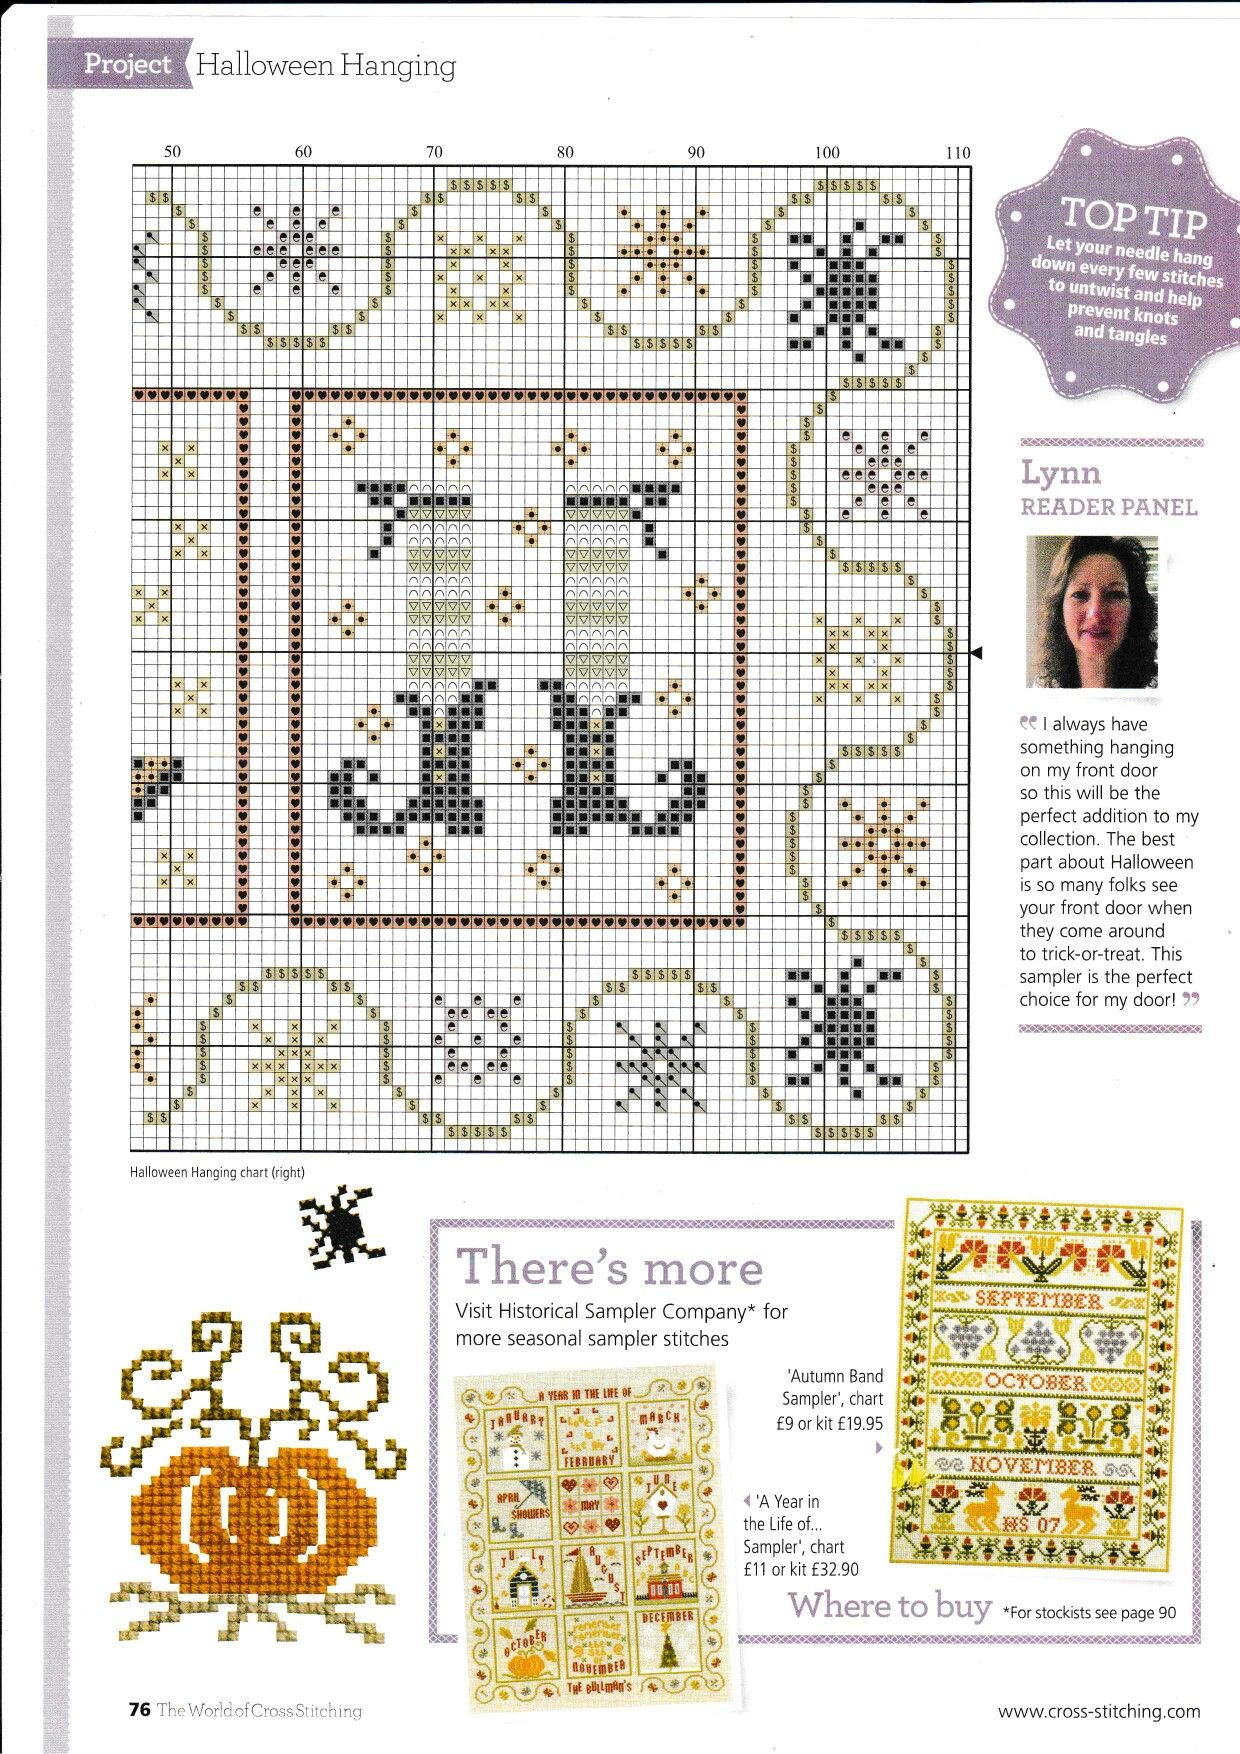 Pin by Deb Sartain on Halloween and Fall Cross Stitch II | Pinterest ...